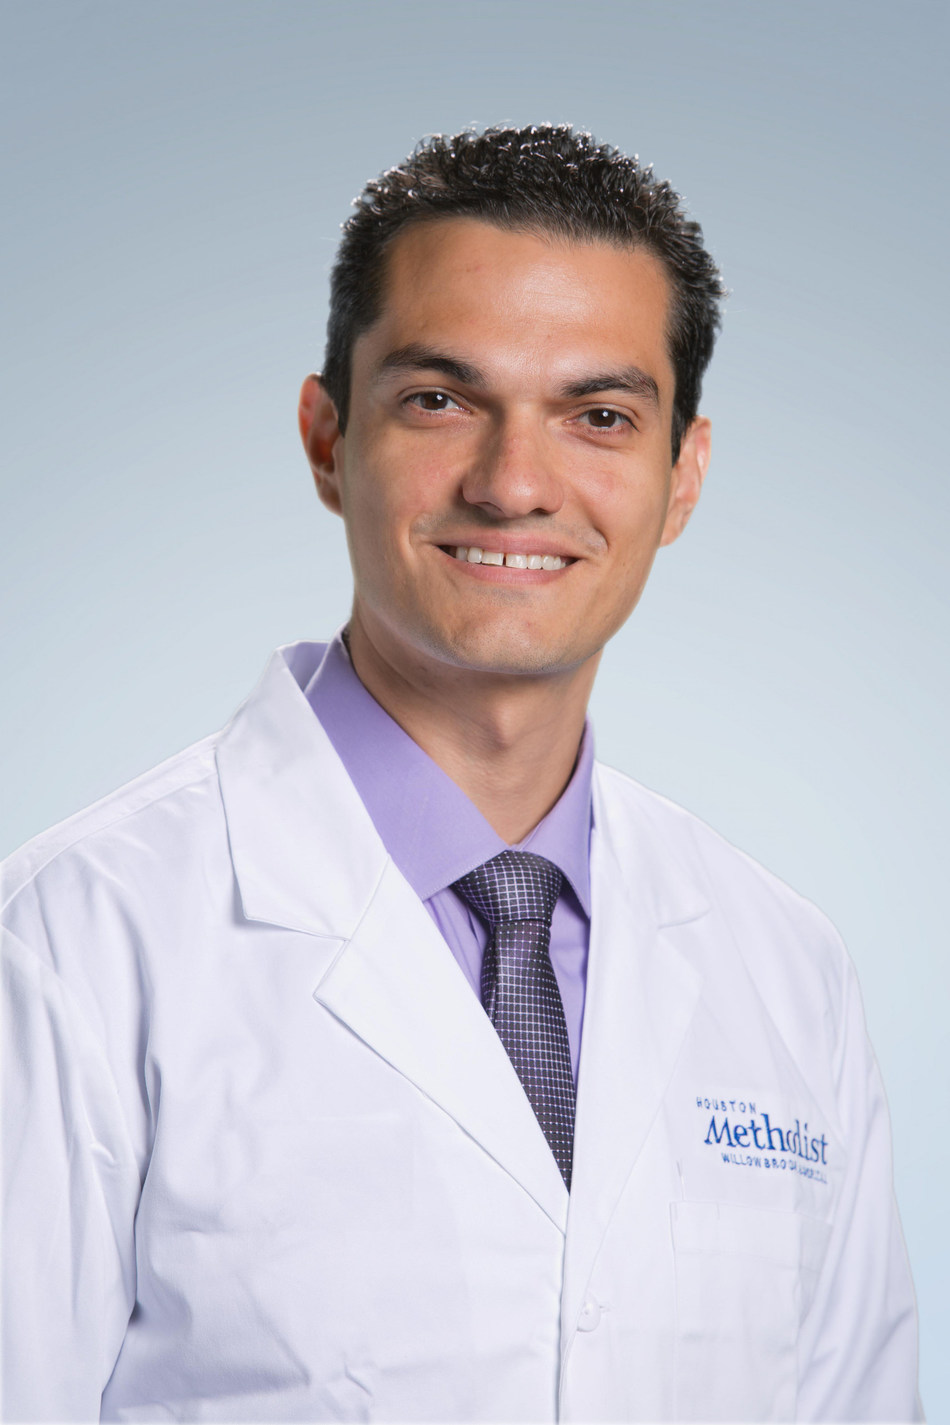 Dr. Diego Marines, board certified and fellowship trained colon and rectal surgeon at Houston Methodist Willowbrook Hospital, performed the hospital's first implant of the FENIX® Continence Restoration System for the treatment of Accidental Bowel Leakage.